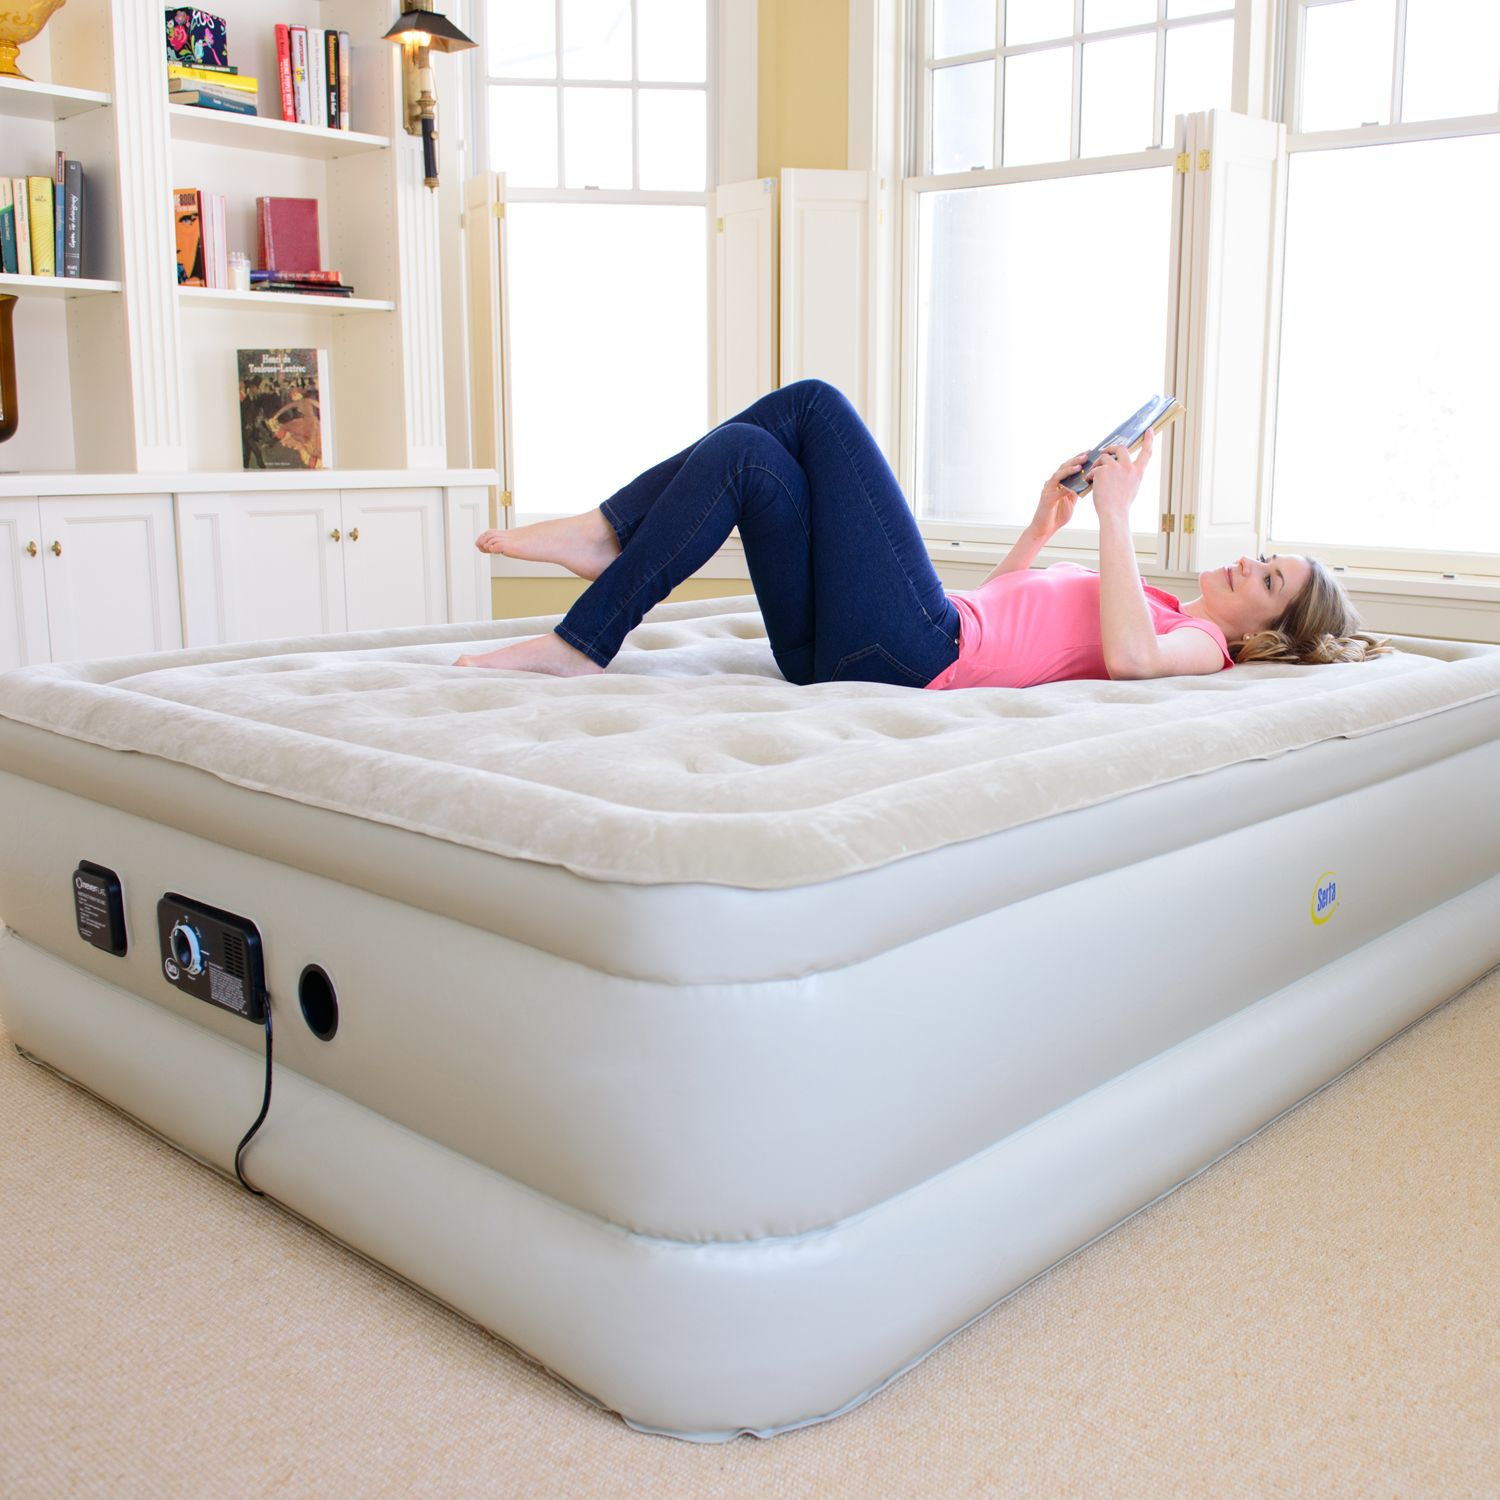 ShopHQ Serta inflatable bed